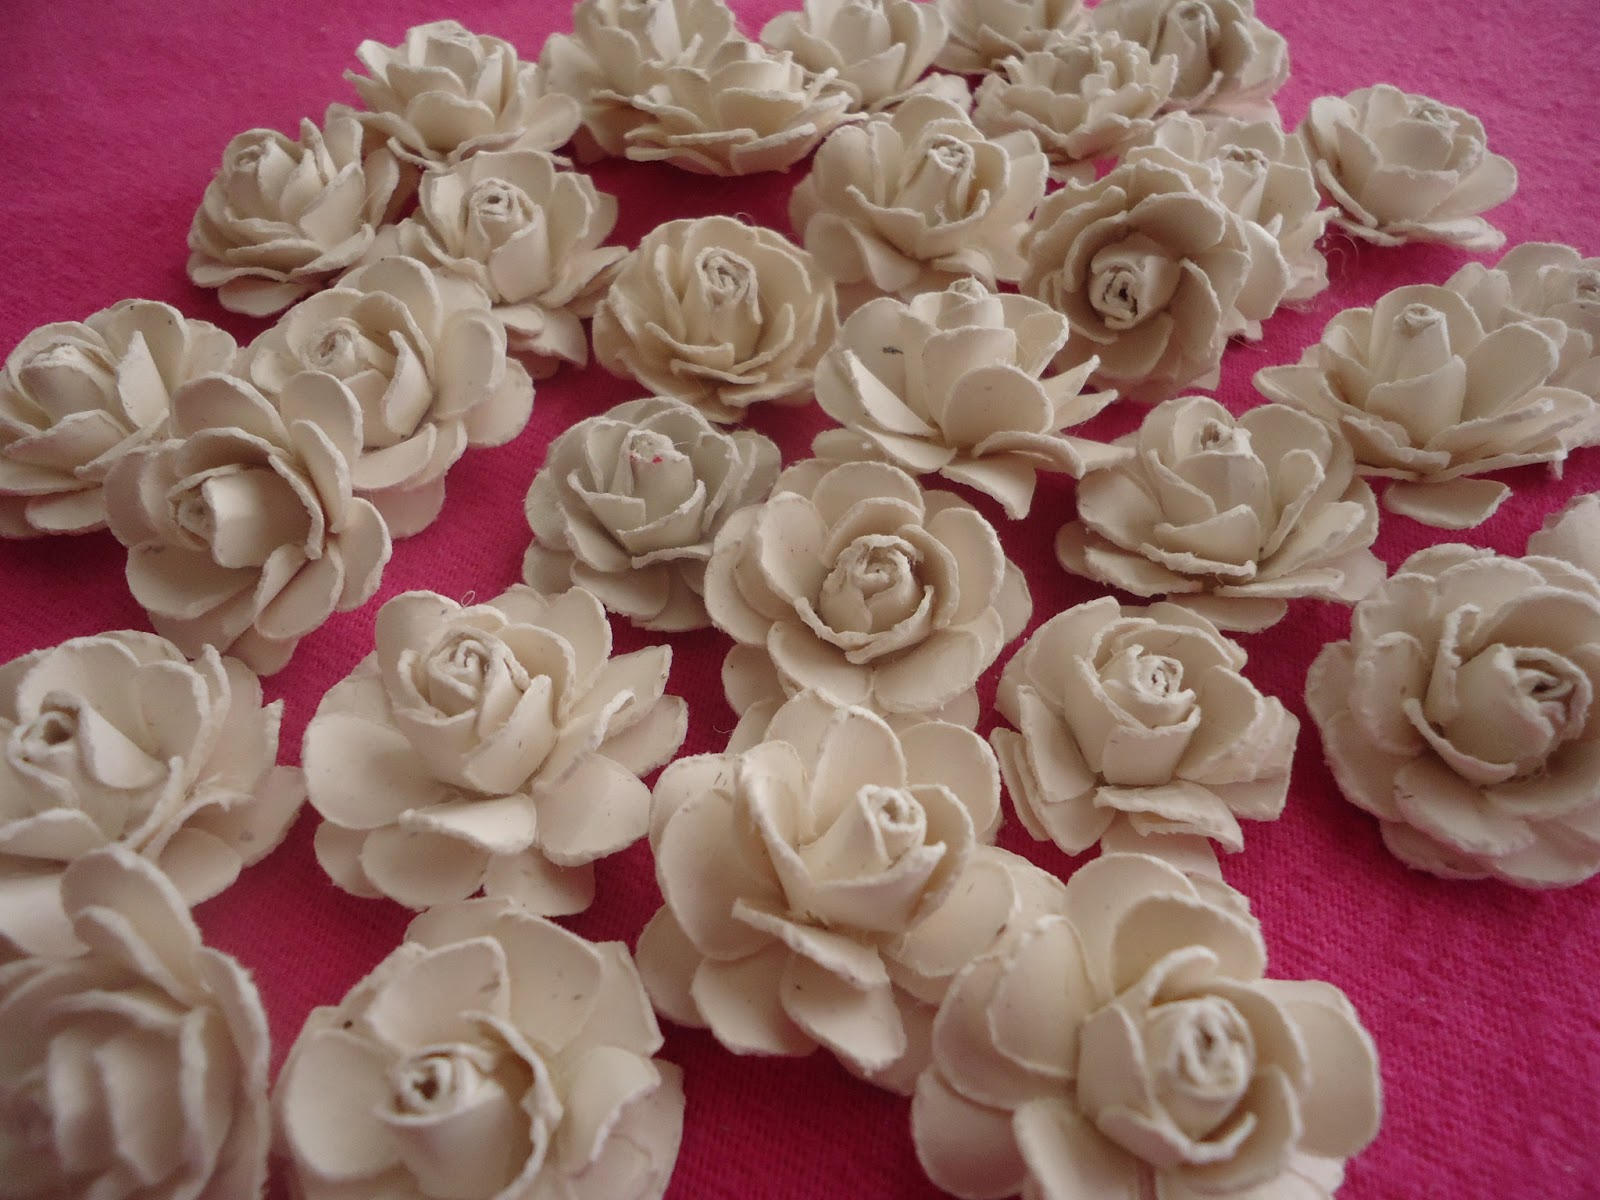 short essay on flower rose Essay on lotus flower in hindi and in english this essay is written both in english and in hindi season (8) short essay (2.